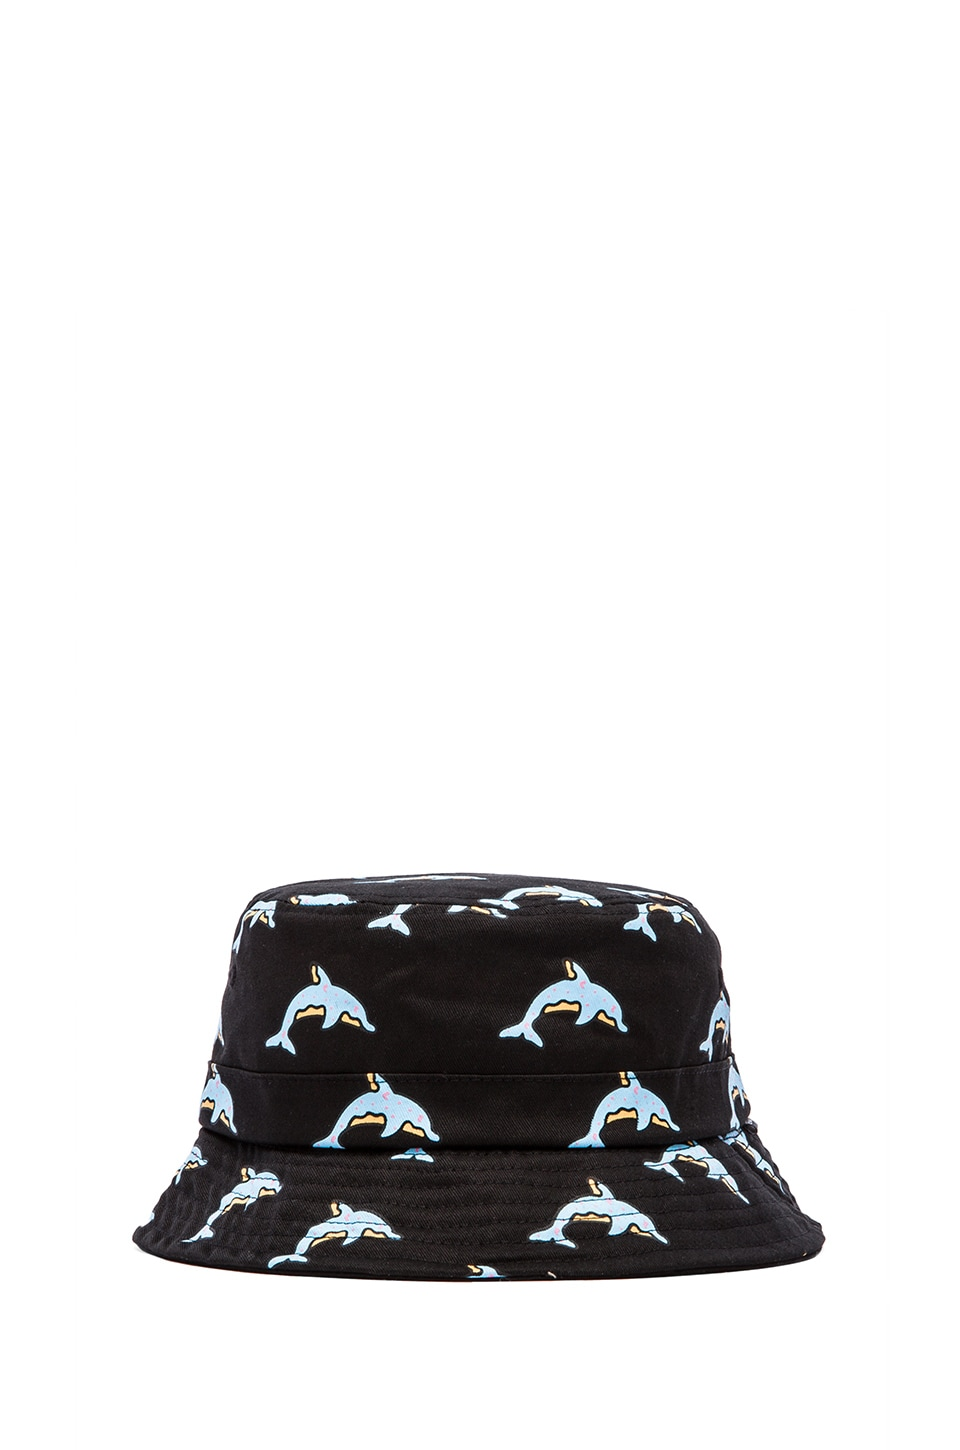 Odd Future Dolphin Donut All Over Bucket Hat in Black